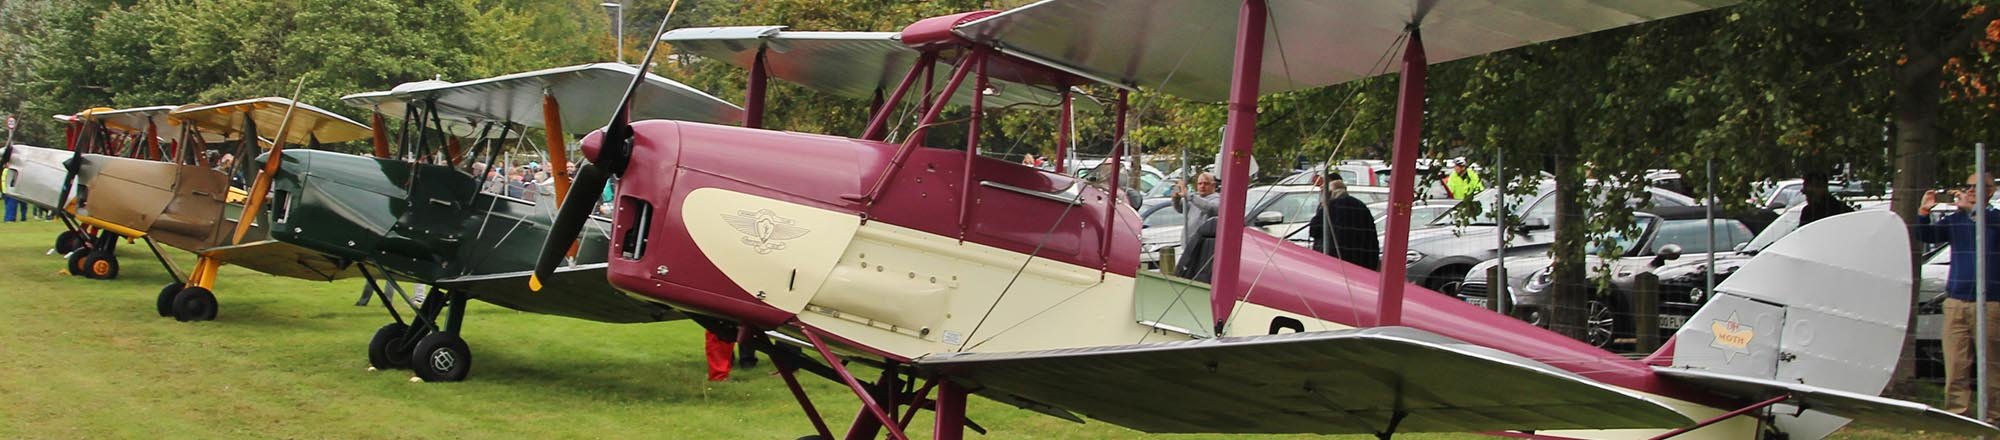 Aviation Day 2017 news tiger moth slider.jpg